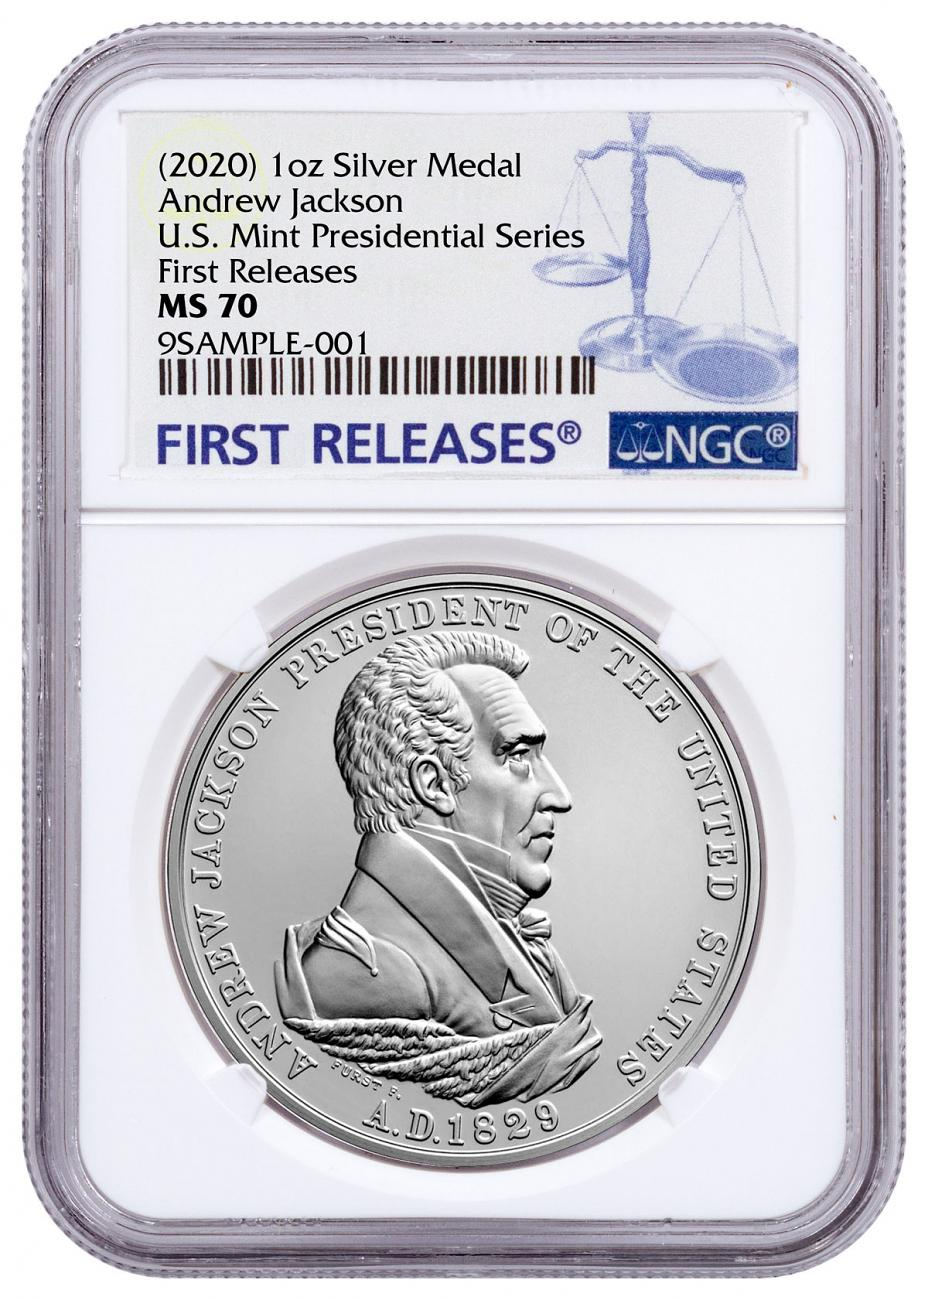 (2020) United States Presidential Medal Andrew Jackson 1 oz Silver Matte Medal NGC MS70 FR